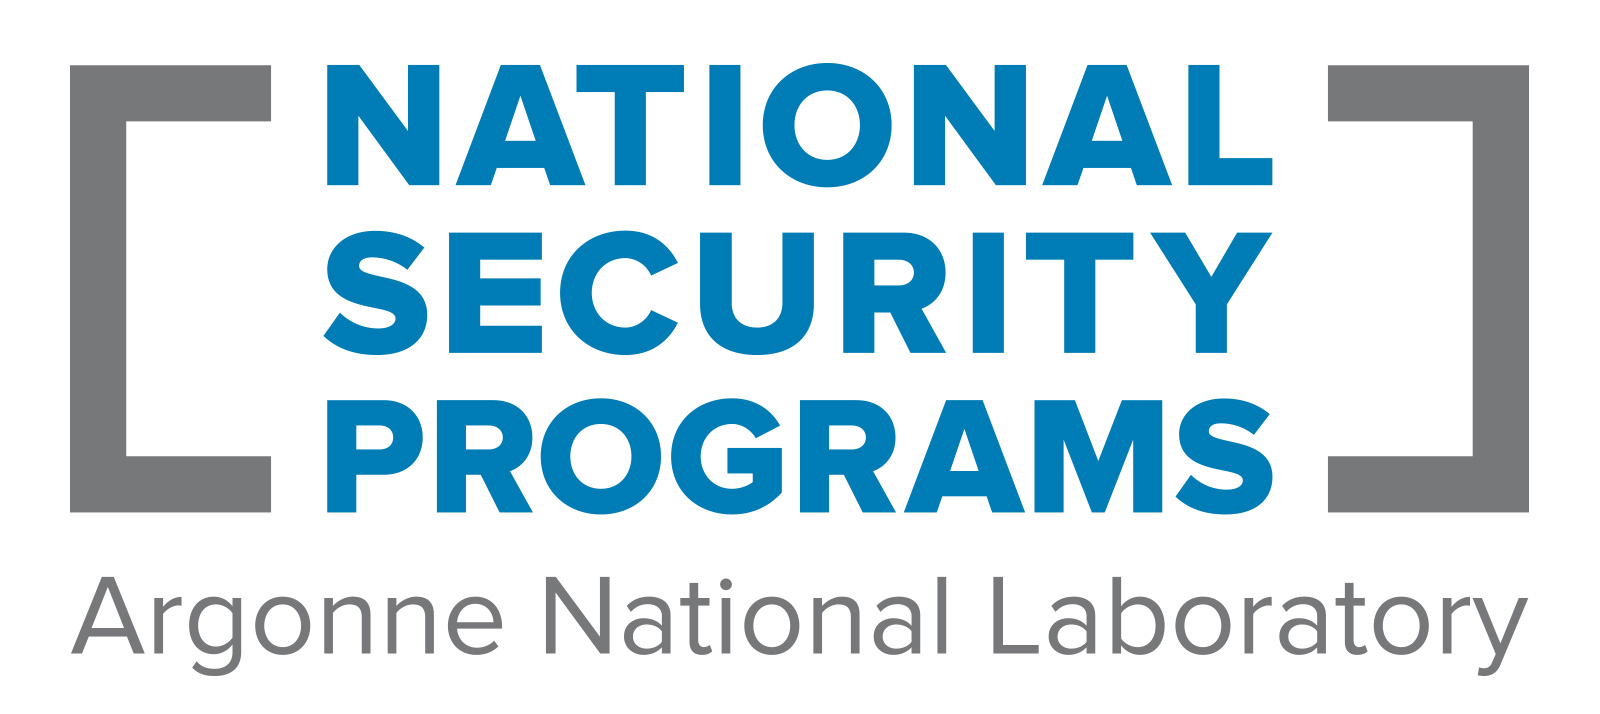 National Security Programs